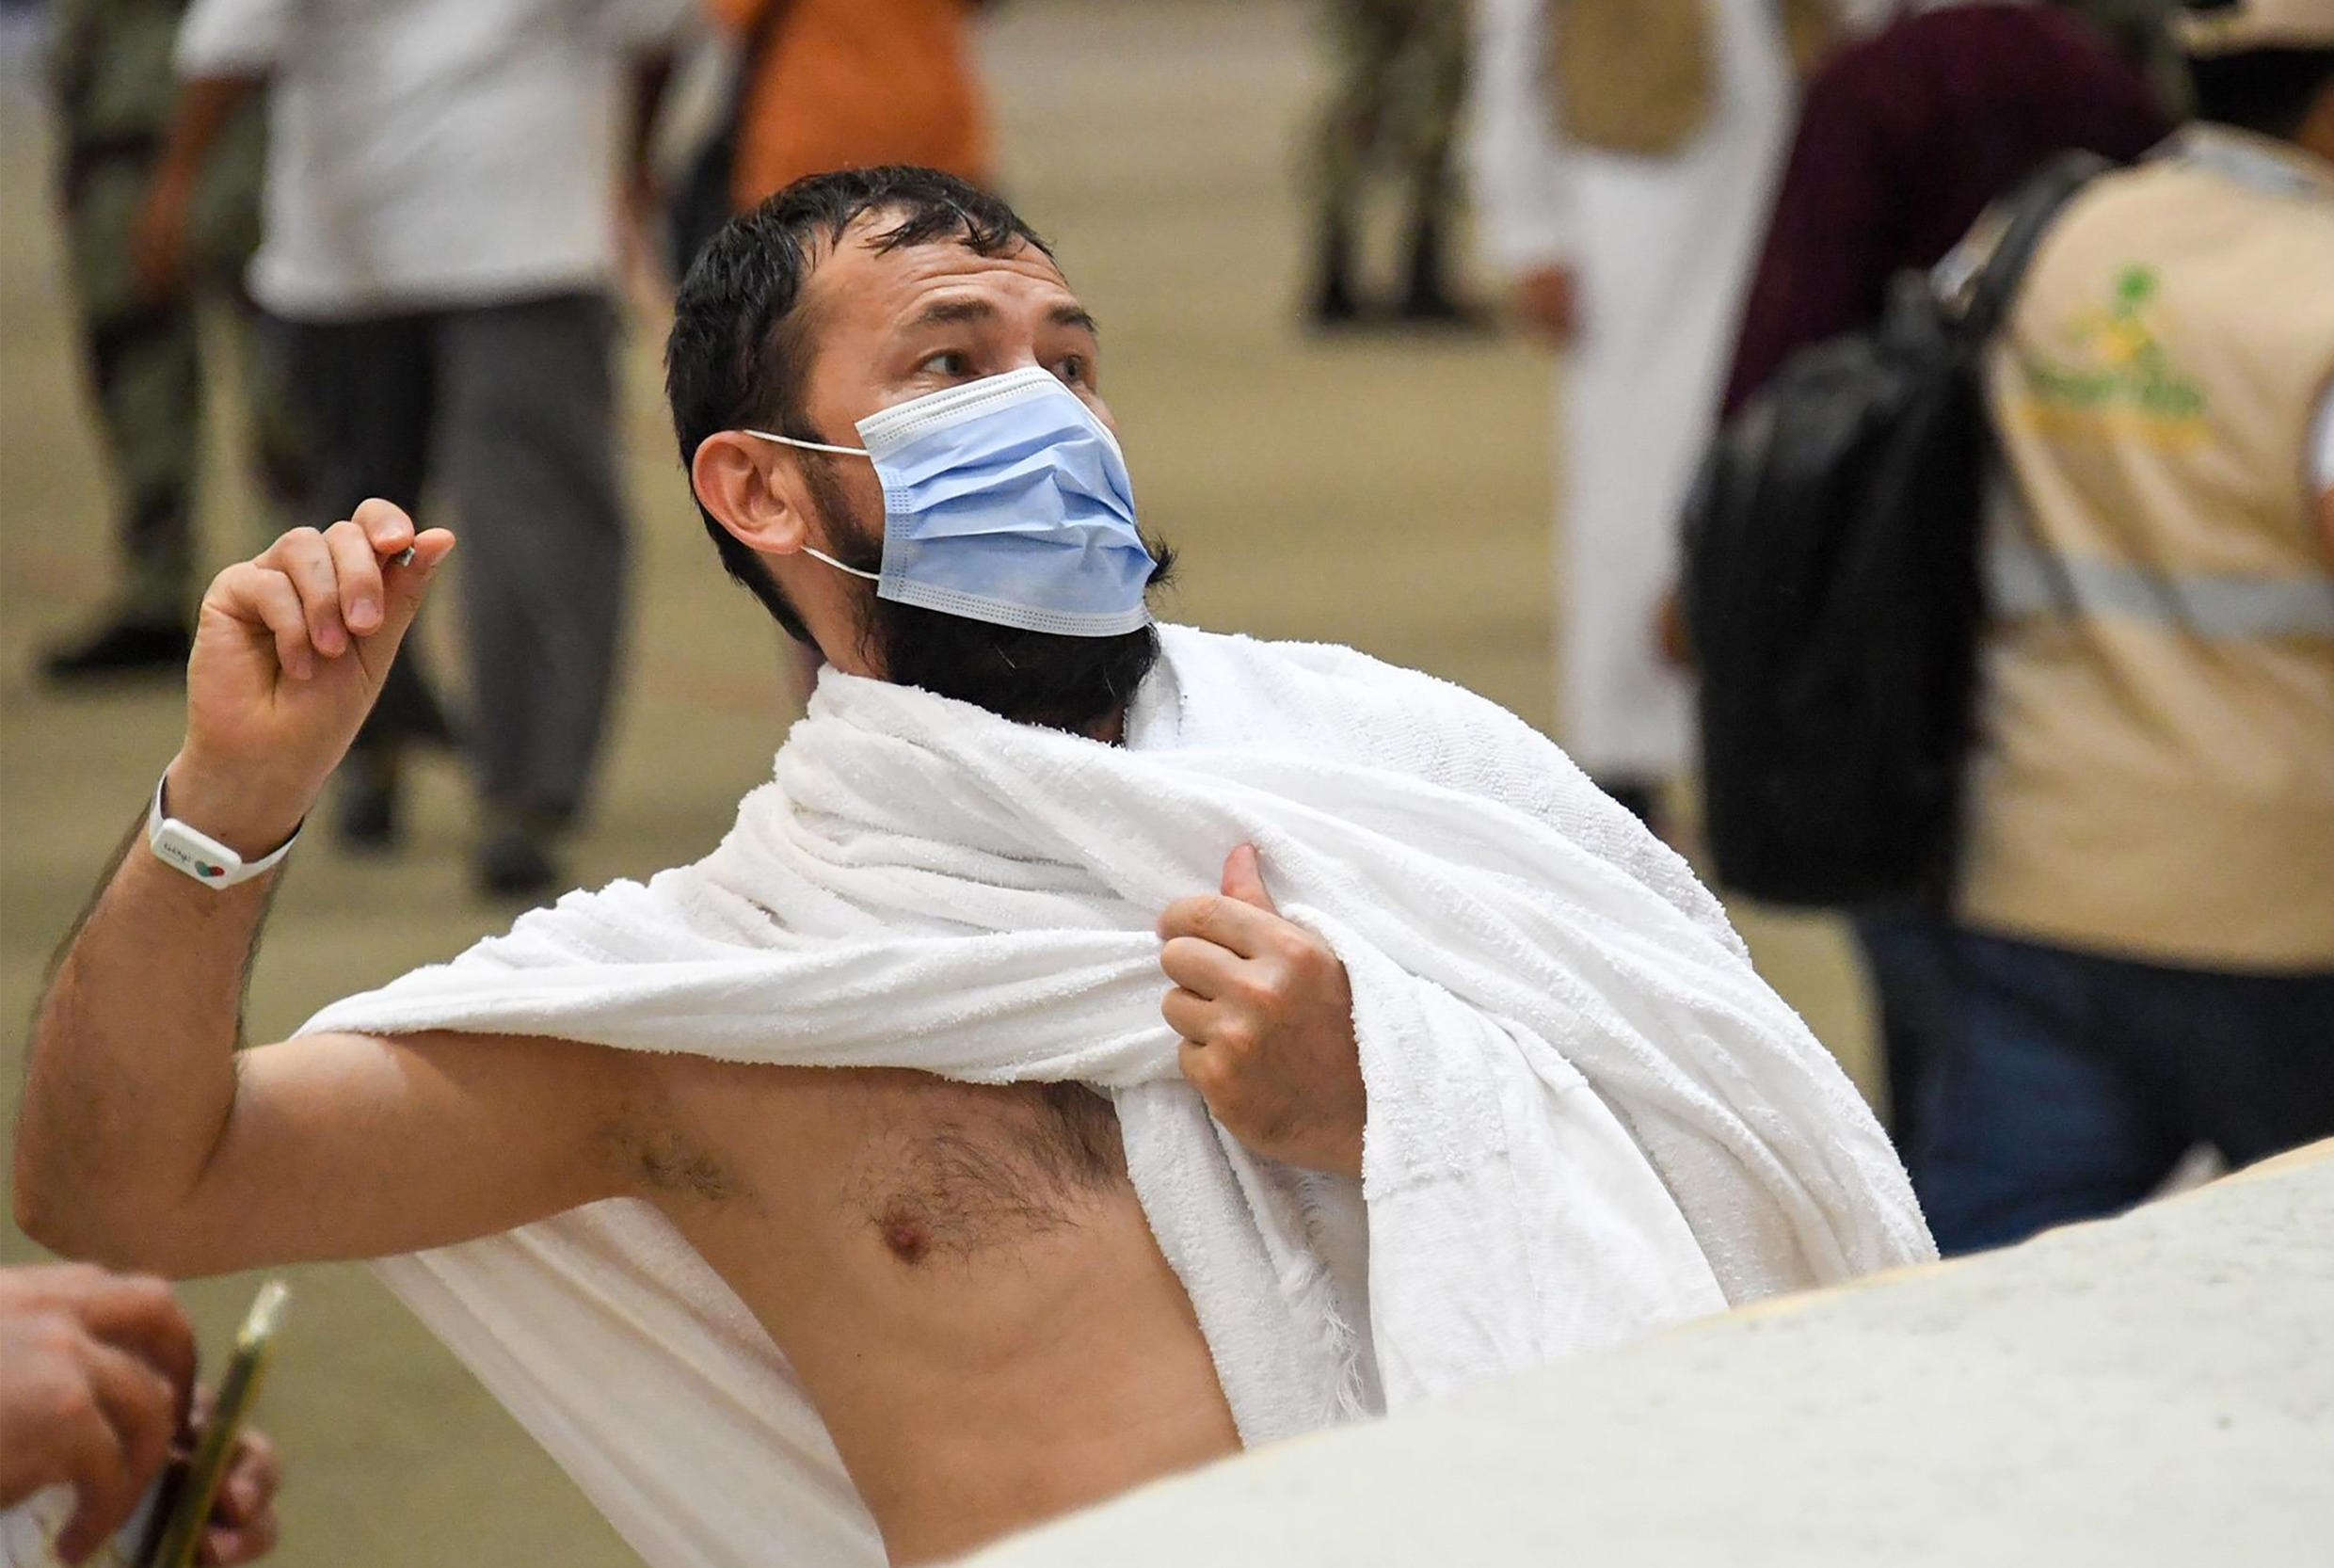 A Muslim worshipper throws pebbles as part of the symbolic al-A'qabah (stoning of the devil ritual) at the Jamarat Bridge during the Hajj pilgrimage